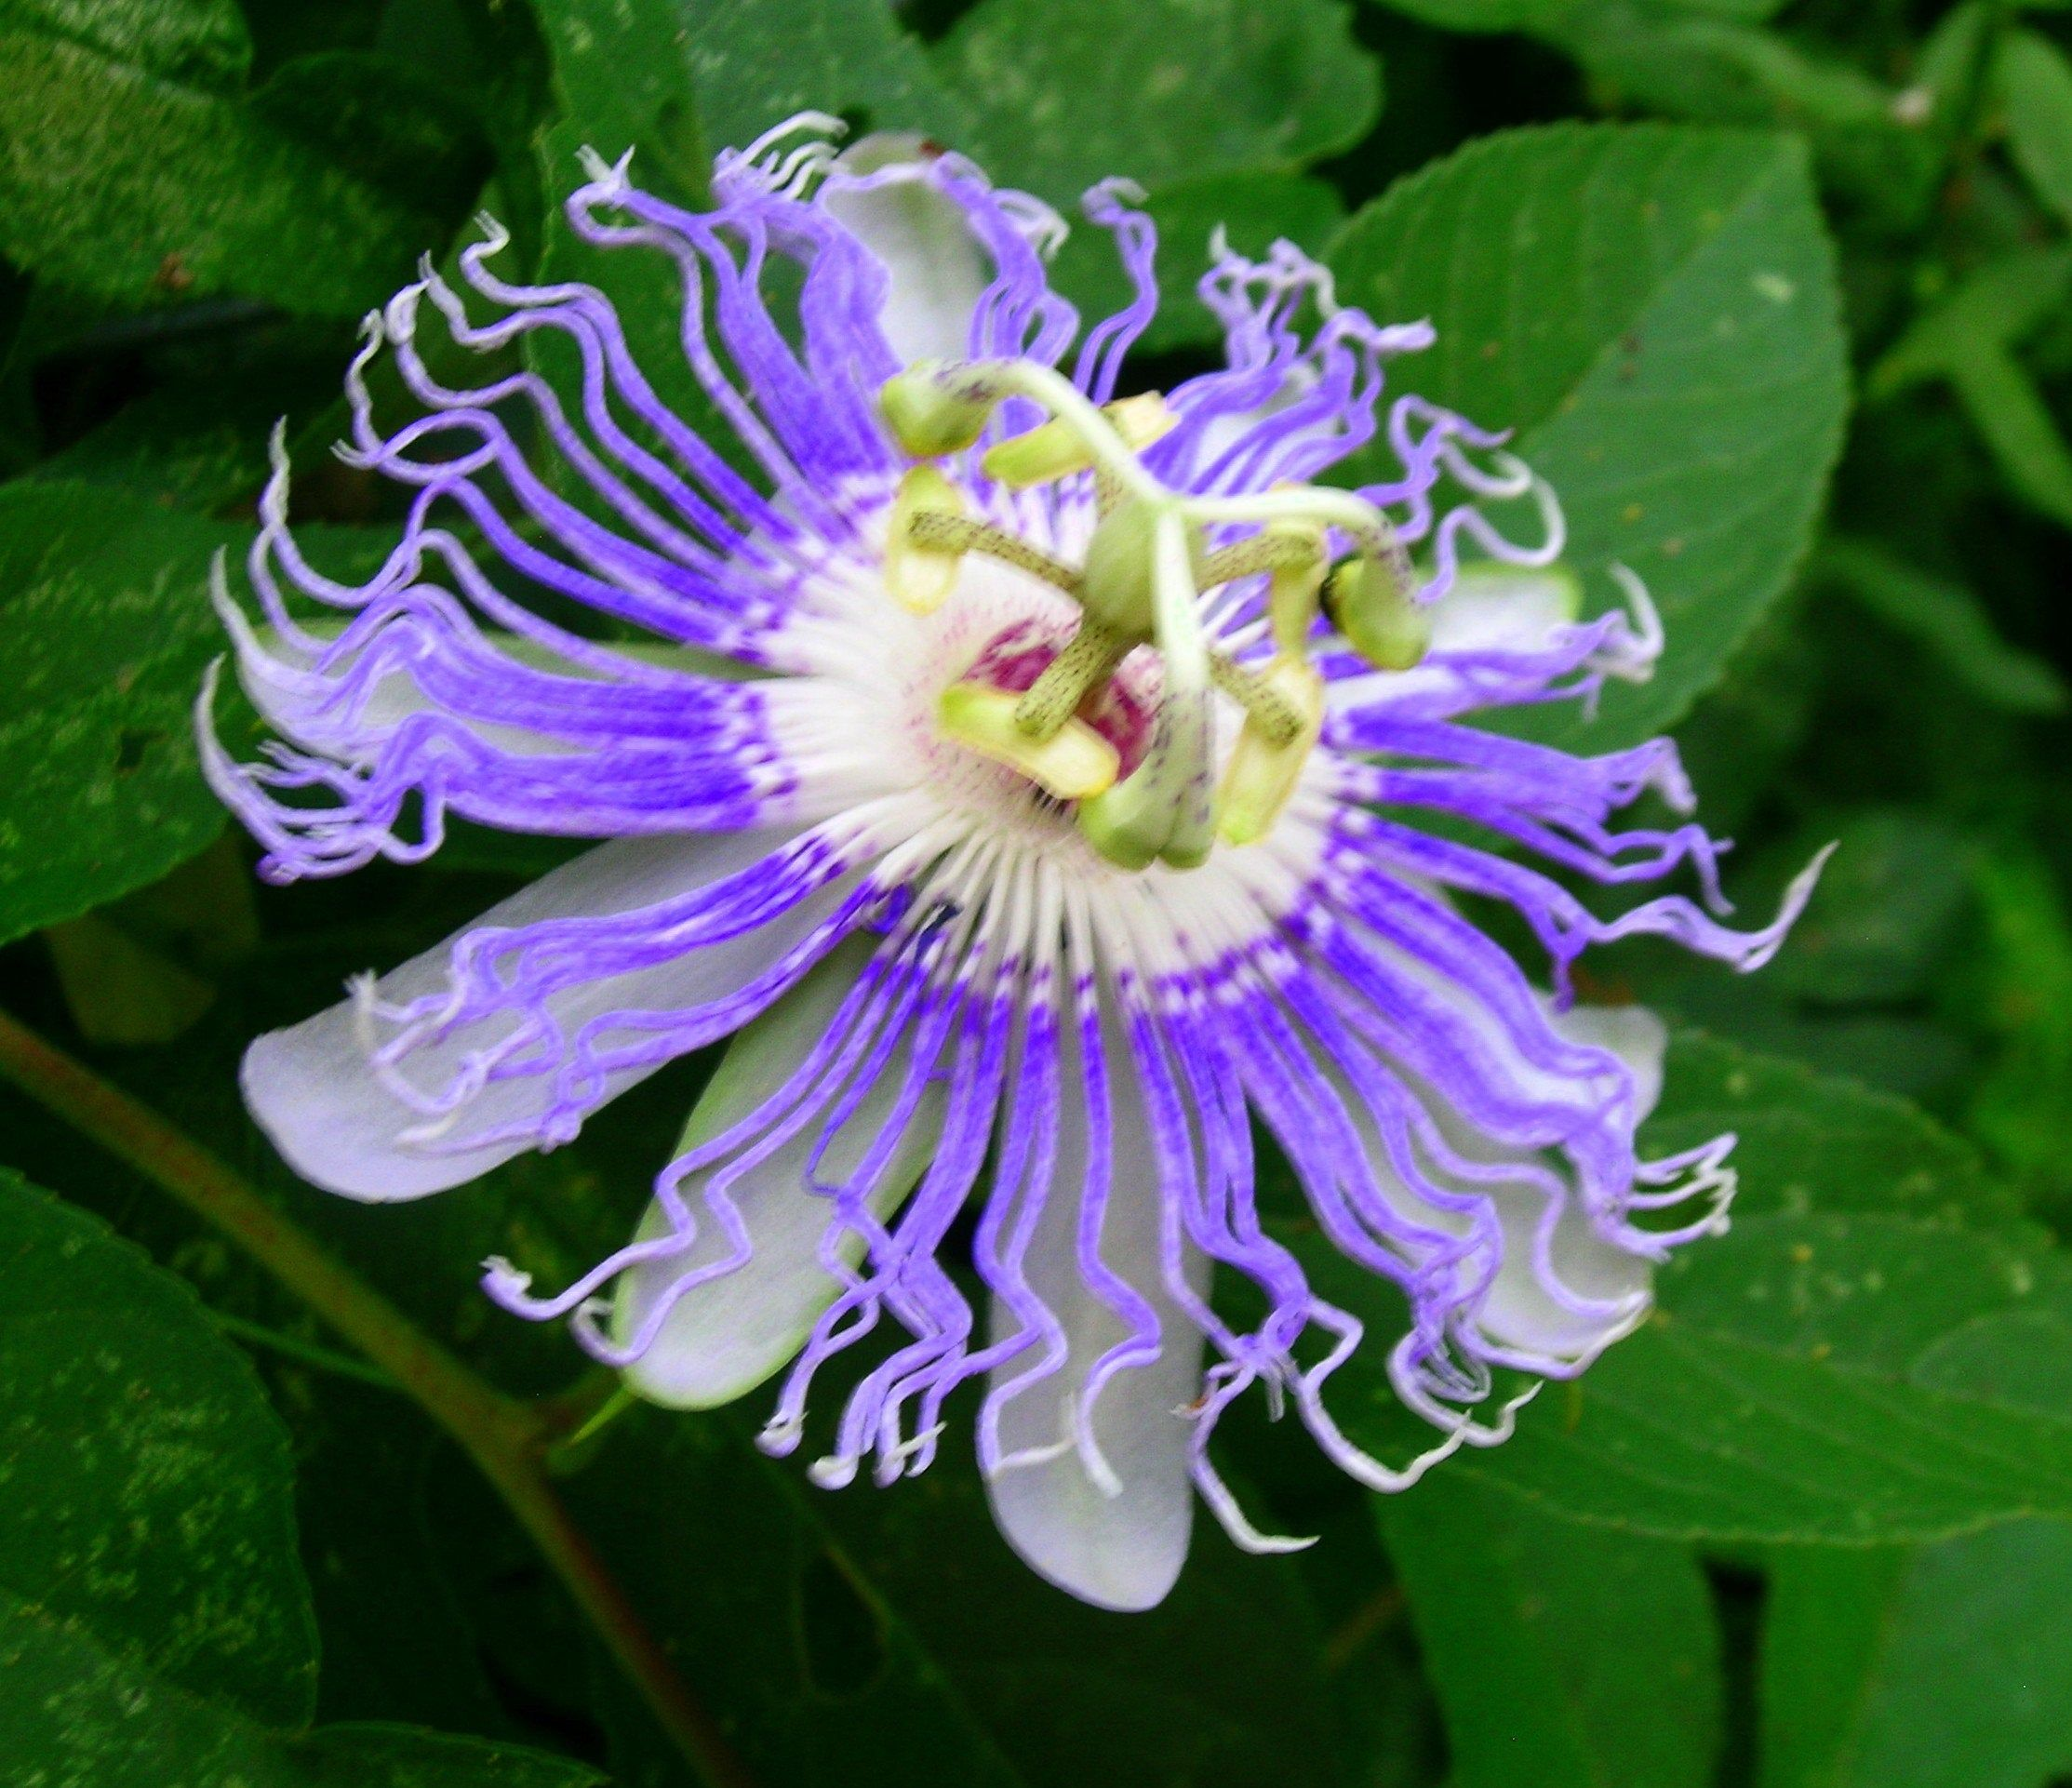 Blue Passion Flower Seeds Just Harvested 10 Seeds Free Shipping In 2020 Blue Passion Flower Flower Seeds Passion Flower